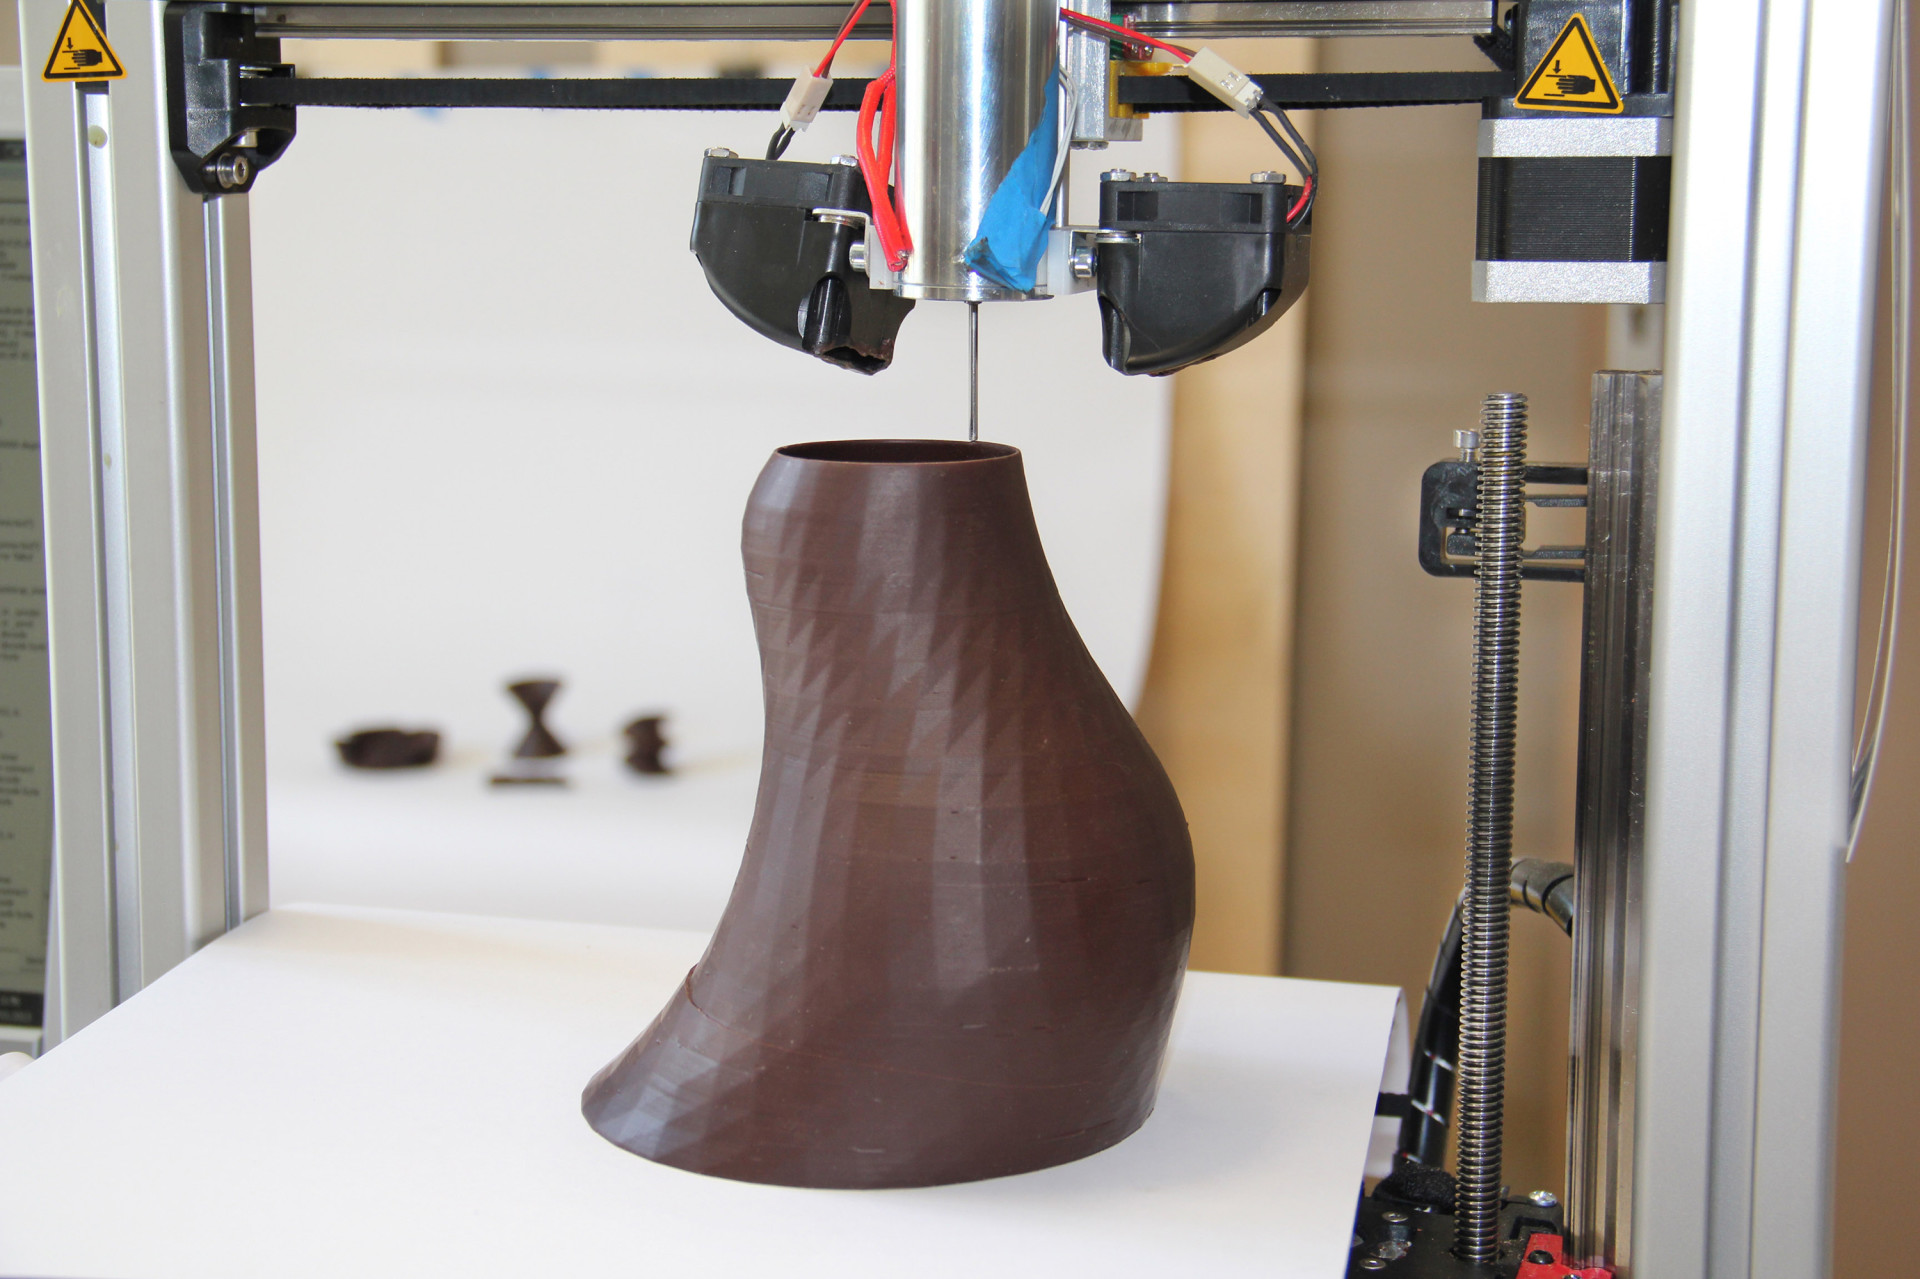 For 3-D food printers, chocolate is a good material to start with, because it's fairly simple to keep it liquid inside the printer cartridge and solid once it drops out.